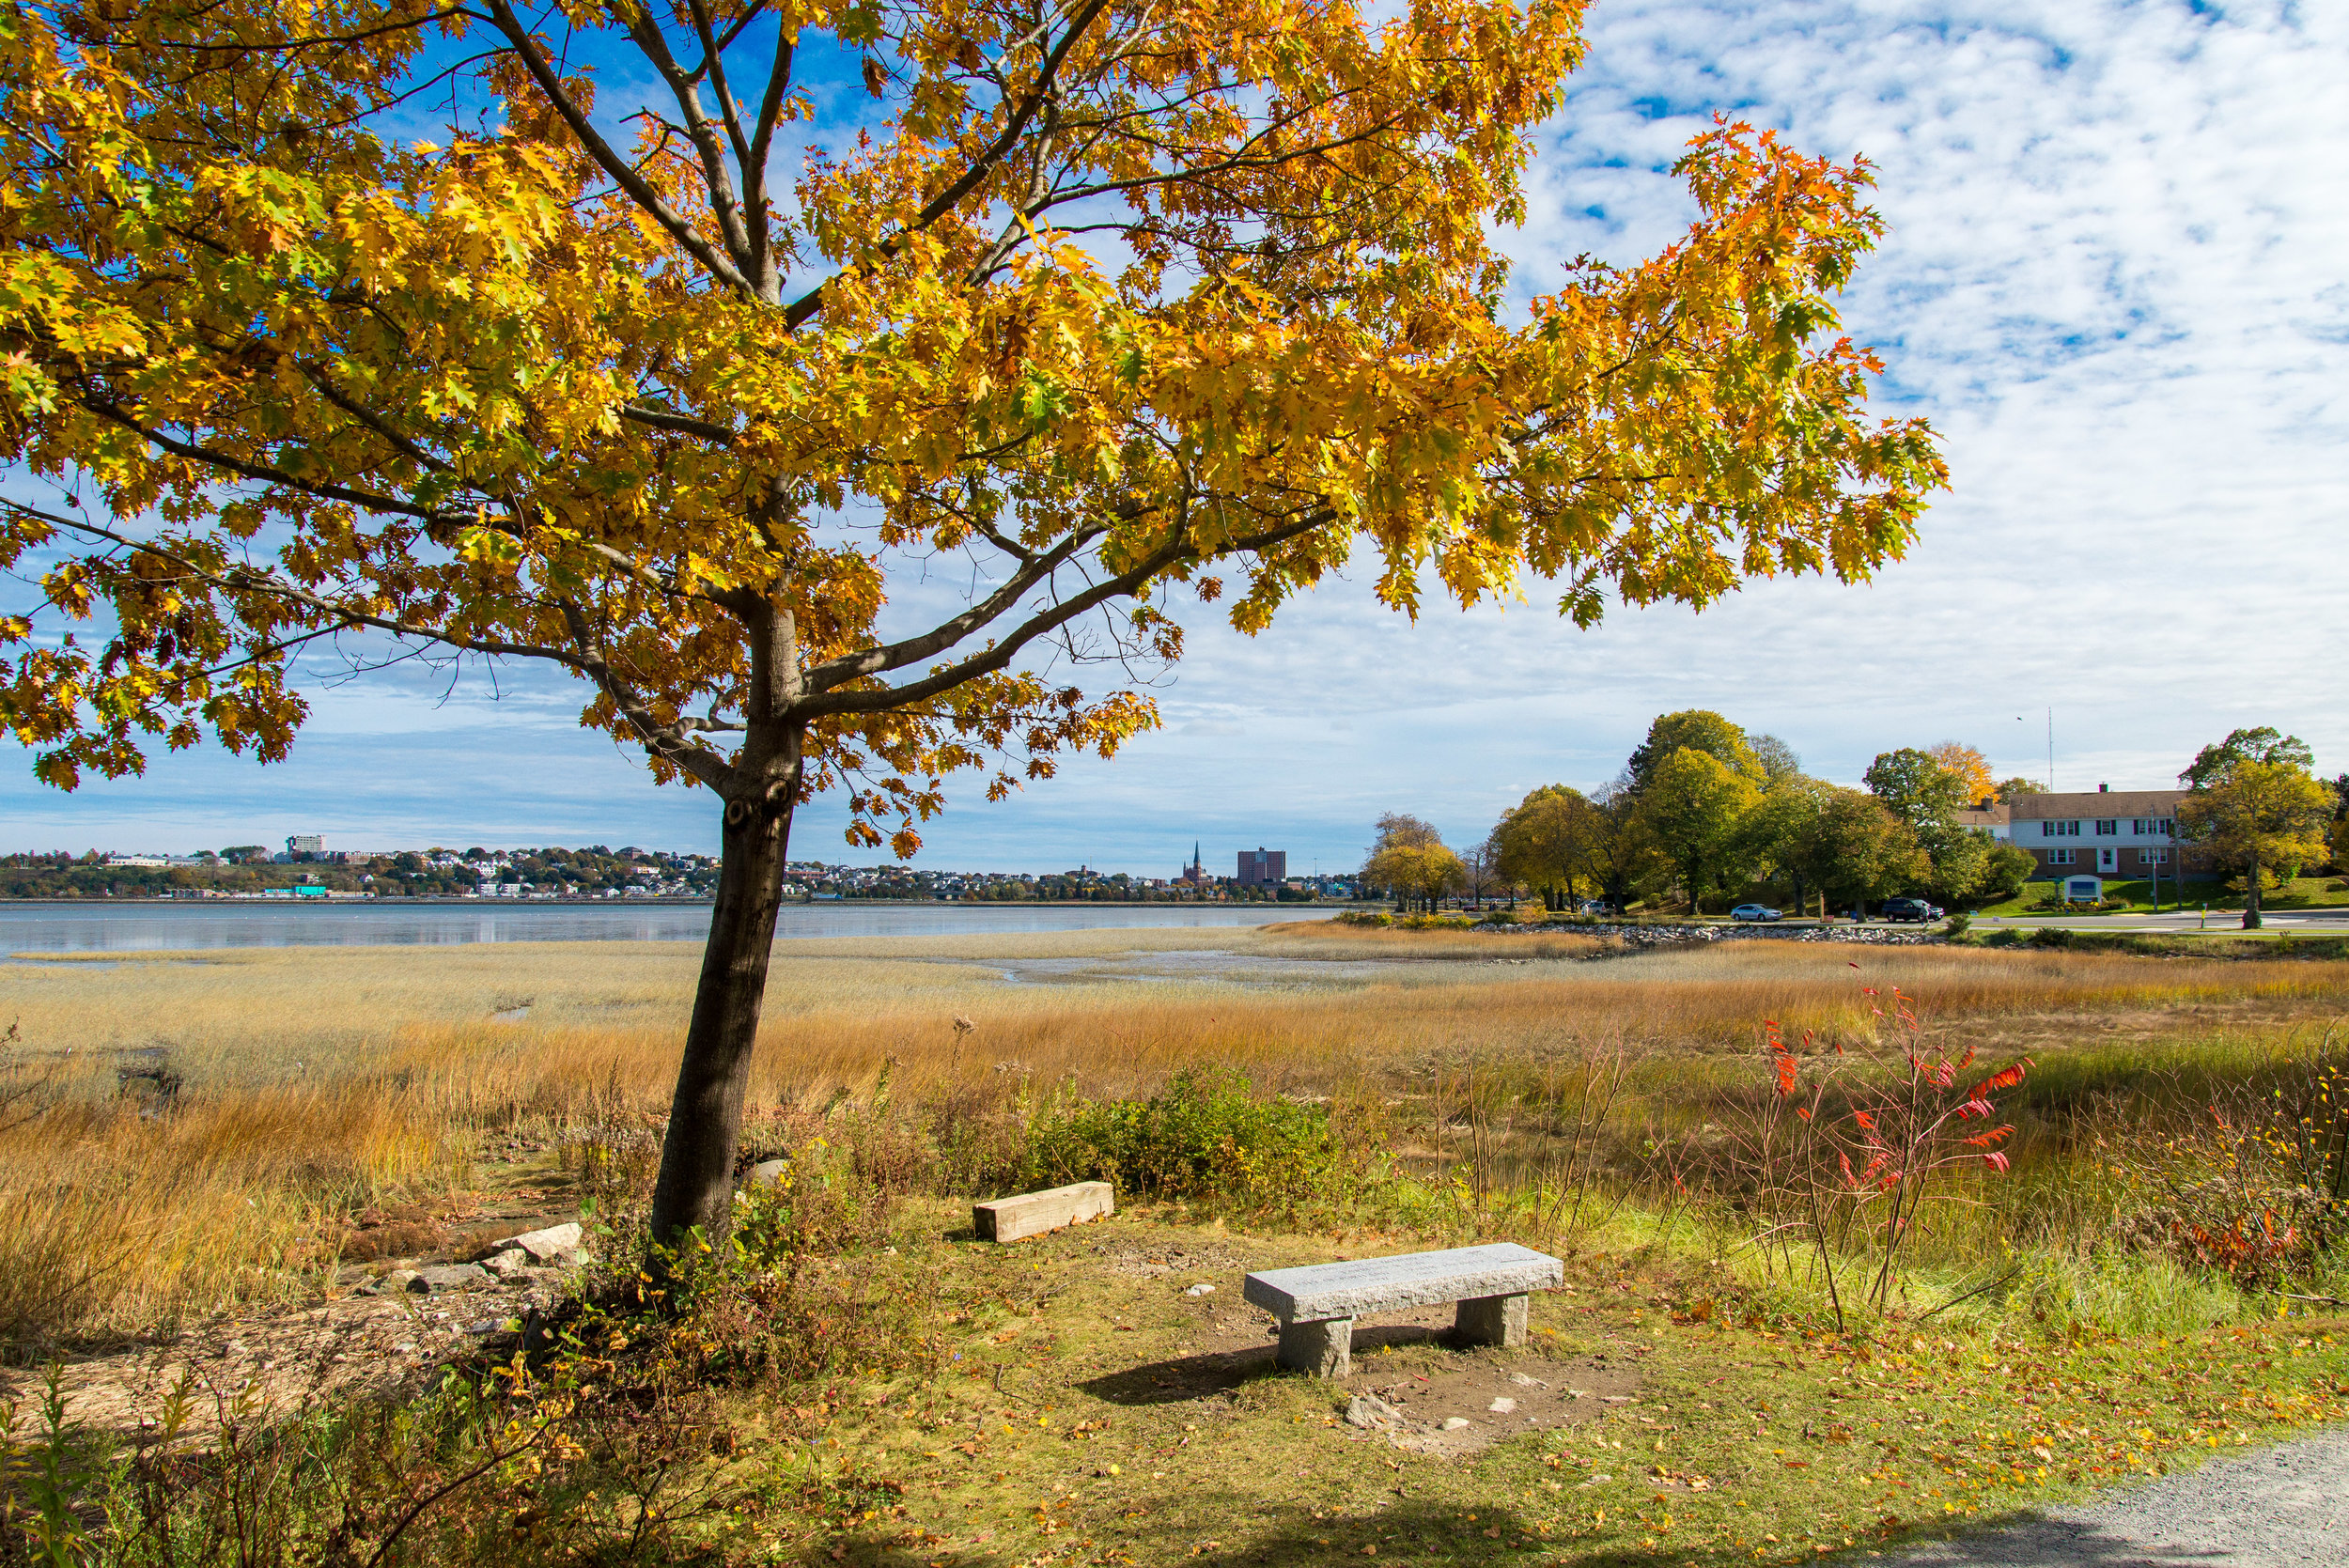 October_2014_Portland_Maine_20141019-DSC_5035 By Corey Templeton Back Cove Foliage and Bench large.jpg